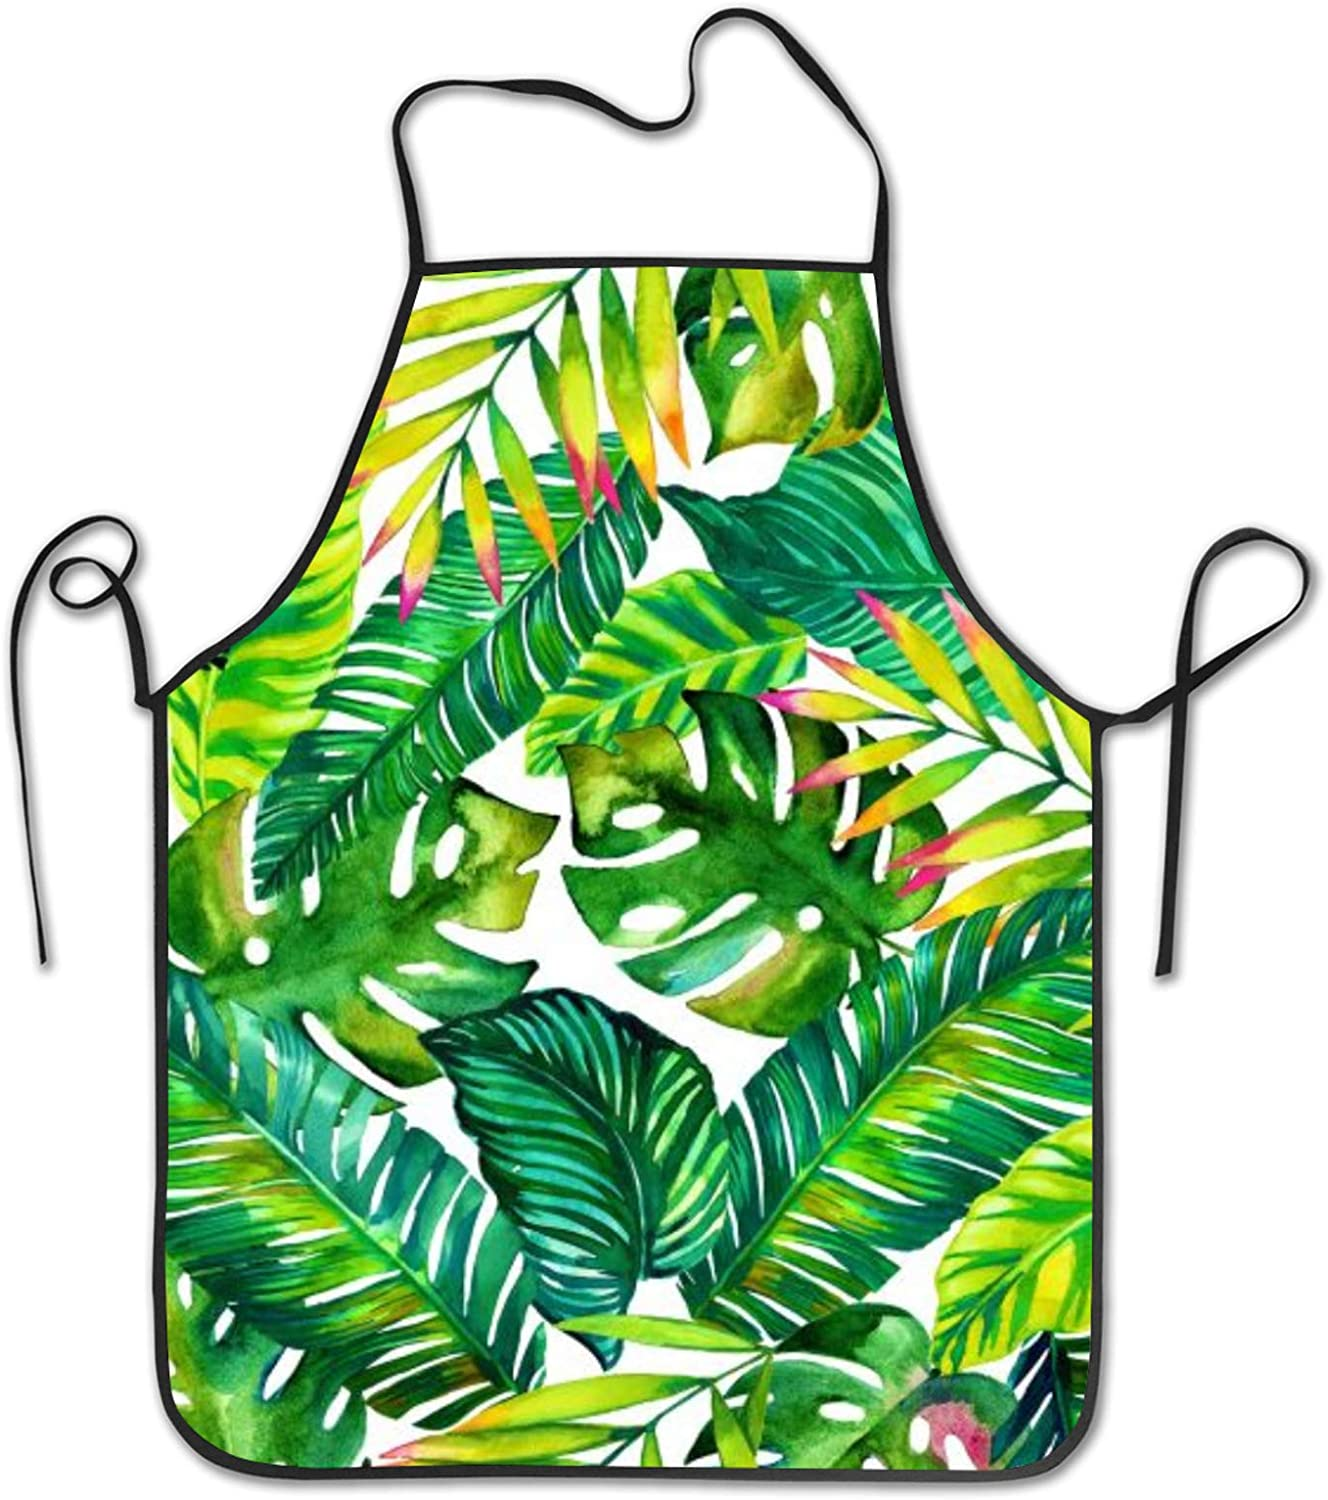 INTFULIHU Women's Banana Leaf Apron Kitchen Cooking and Apron for Cooking Grill Baking Hand Drawn Tropical Plants Apron